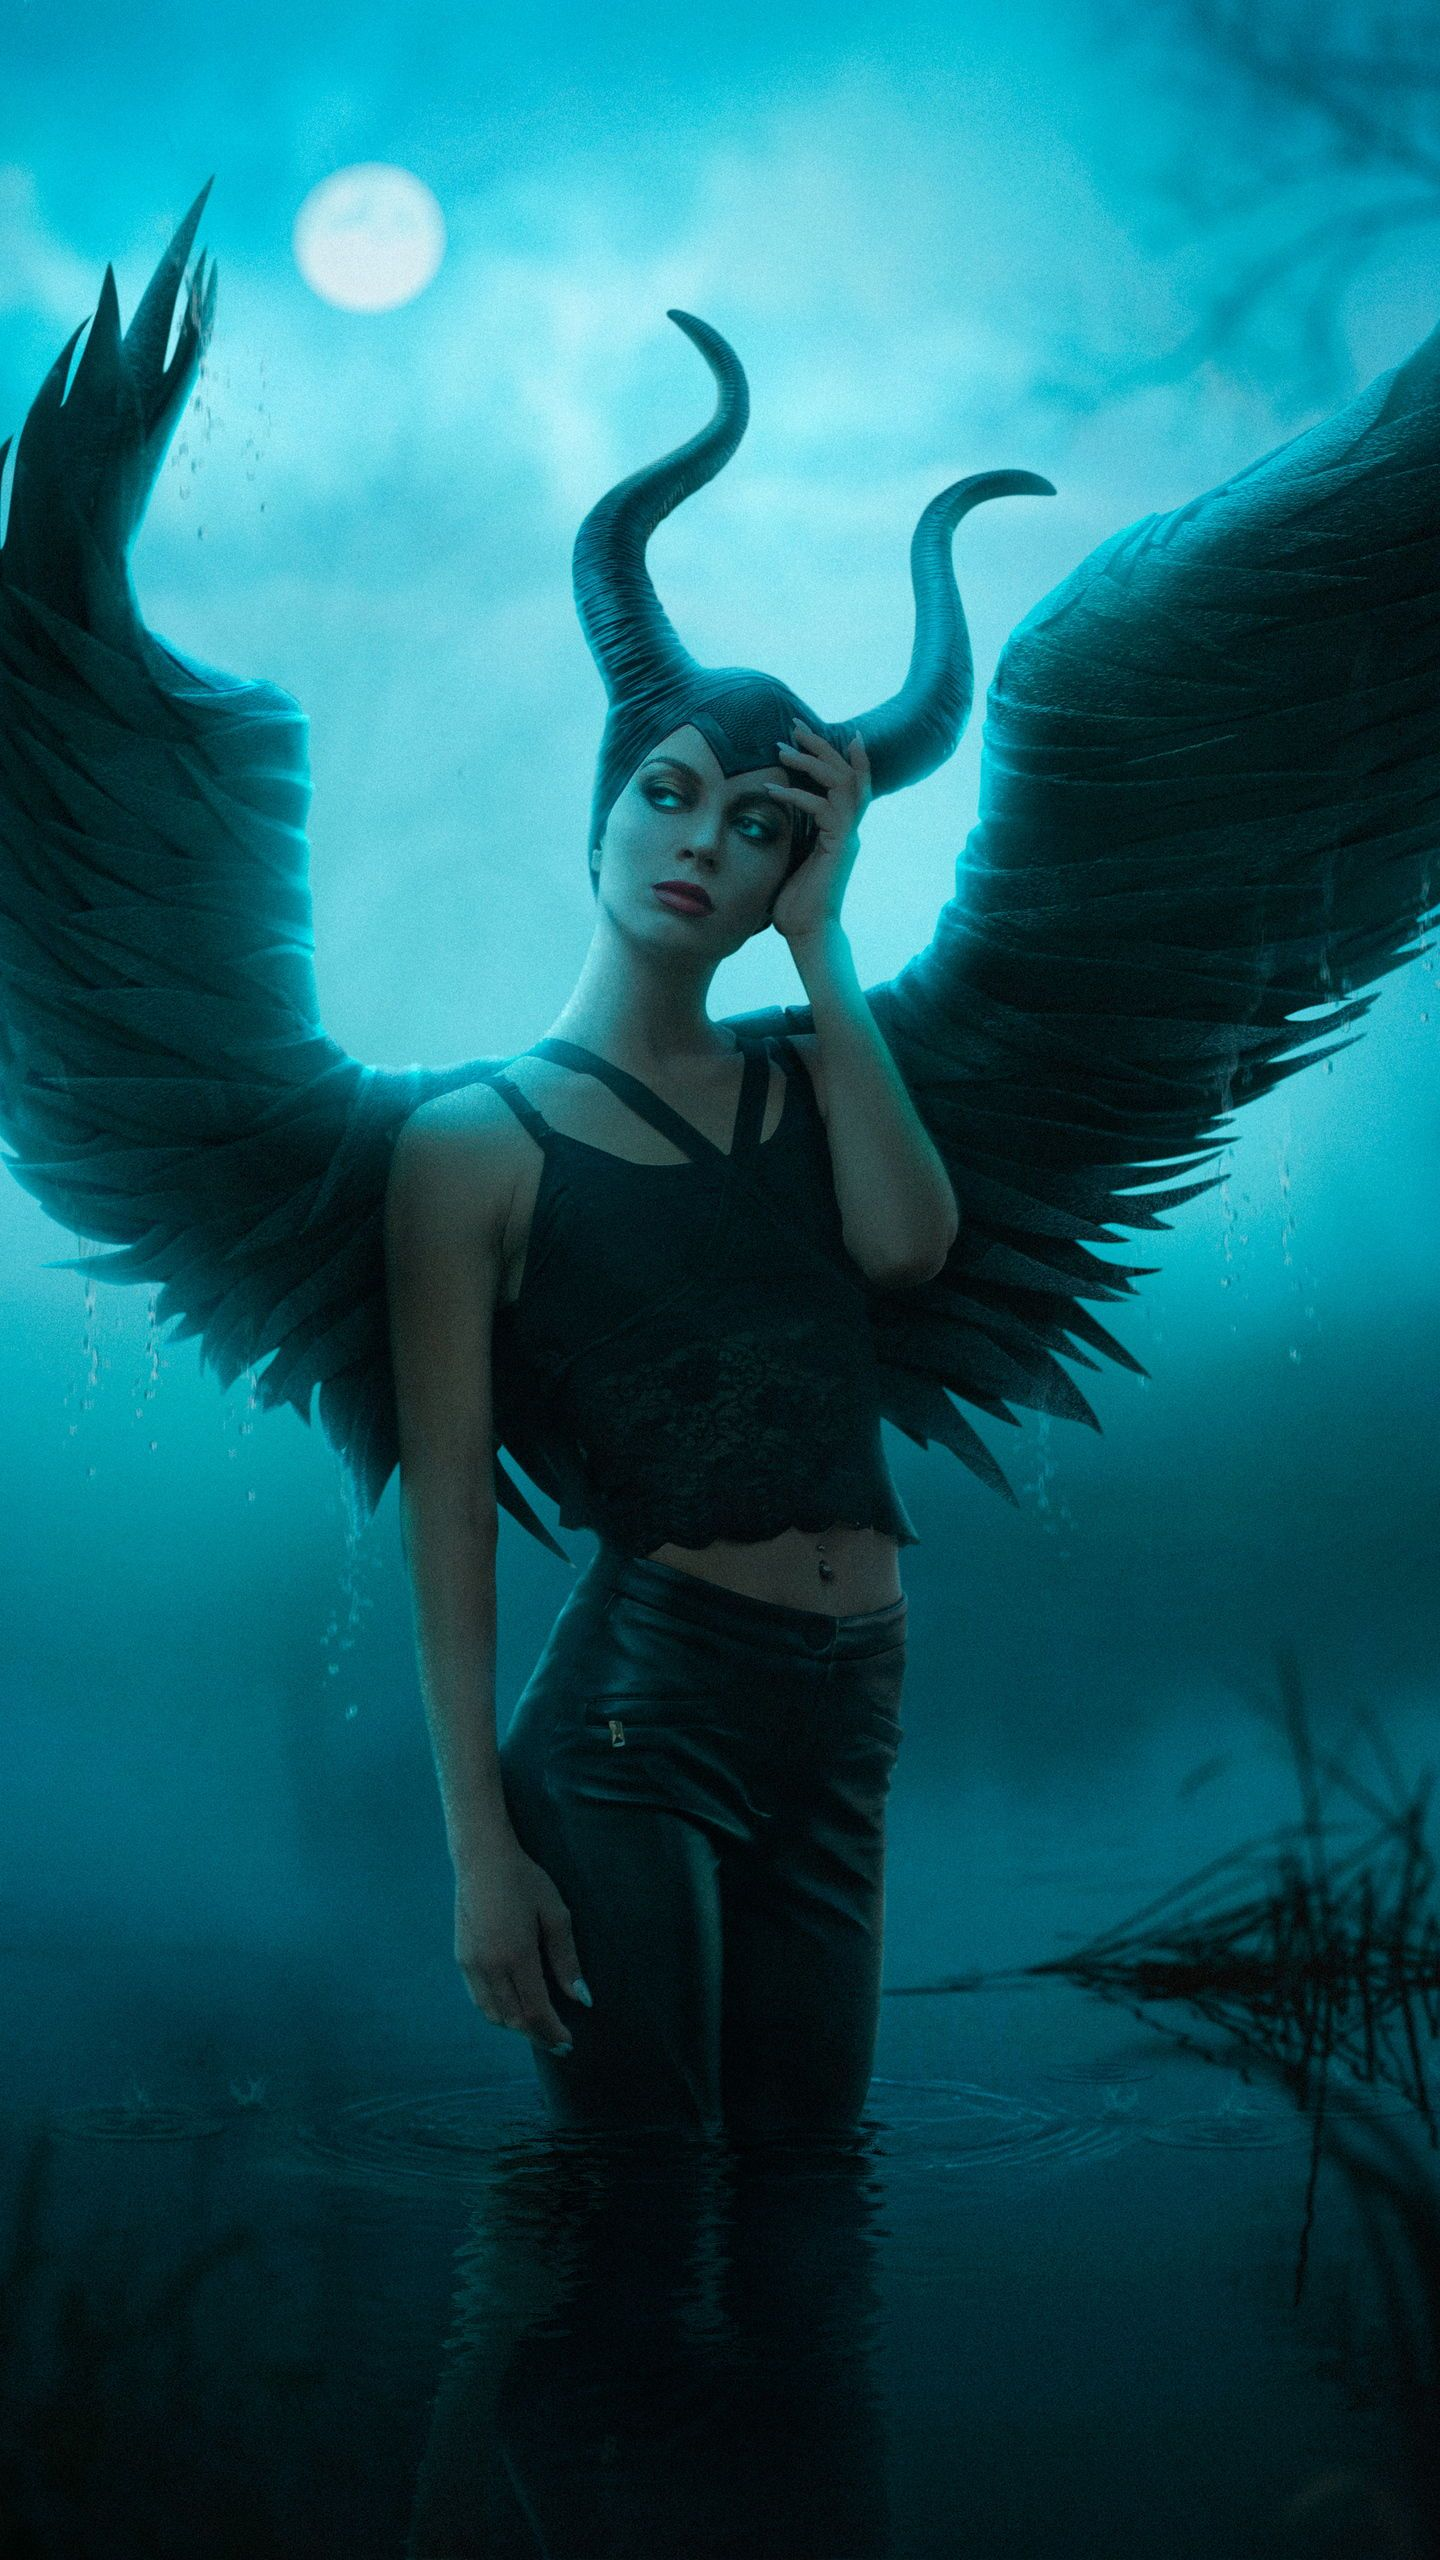 Maleficent Mistress Of Evil Review A Boring Yet Heartwarming Sequel Maleficent Maleficent2 Maleficentmistress Maleficent Fantasy Films All Disney Movies